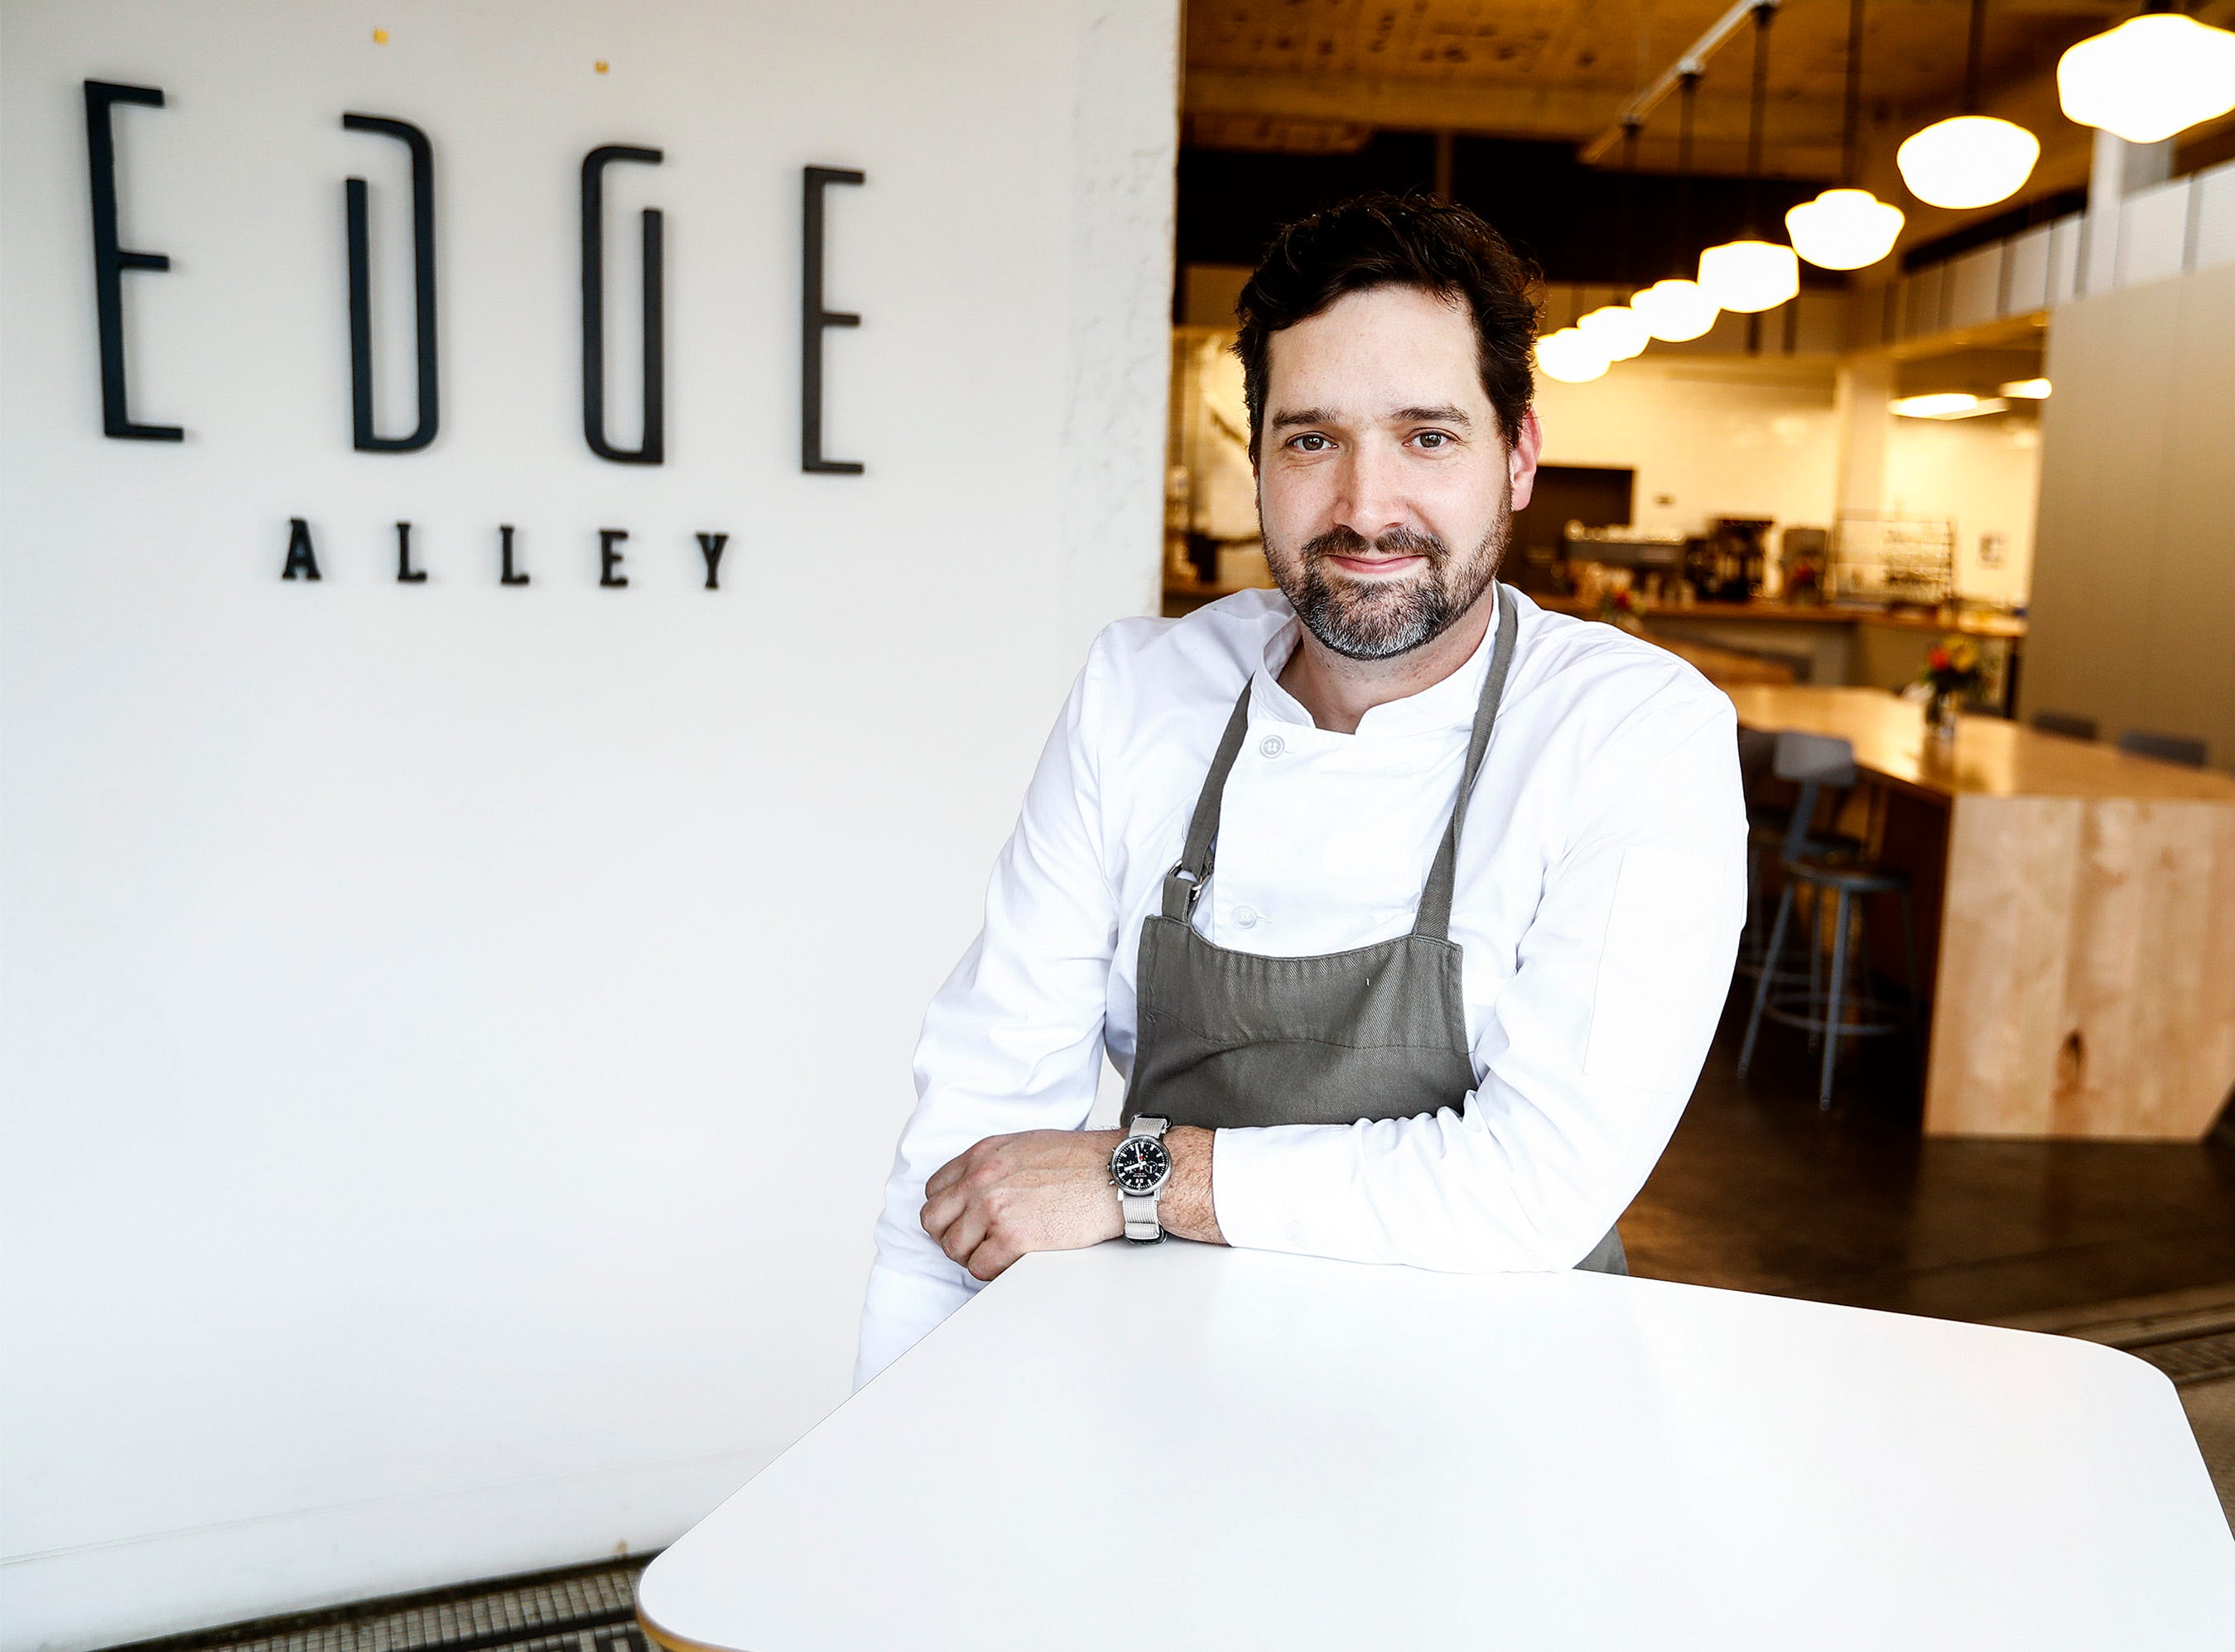 Edge Alley owner Tim Barker opened his concept restaurant that is part coffee shop and art gallery.